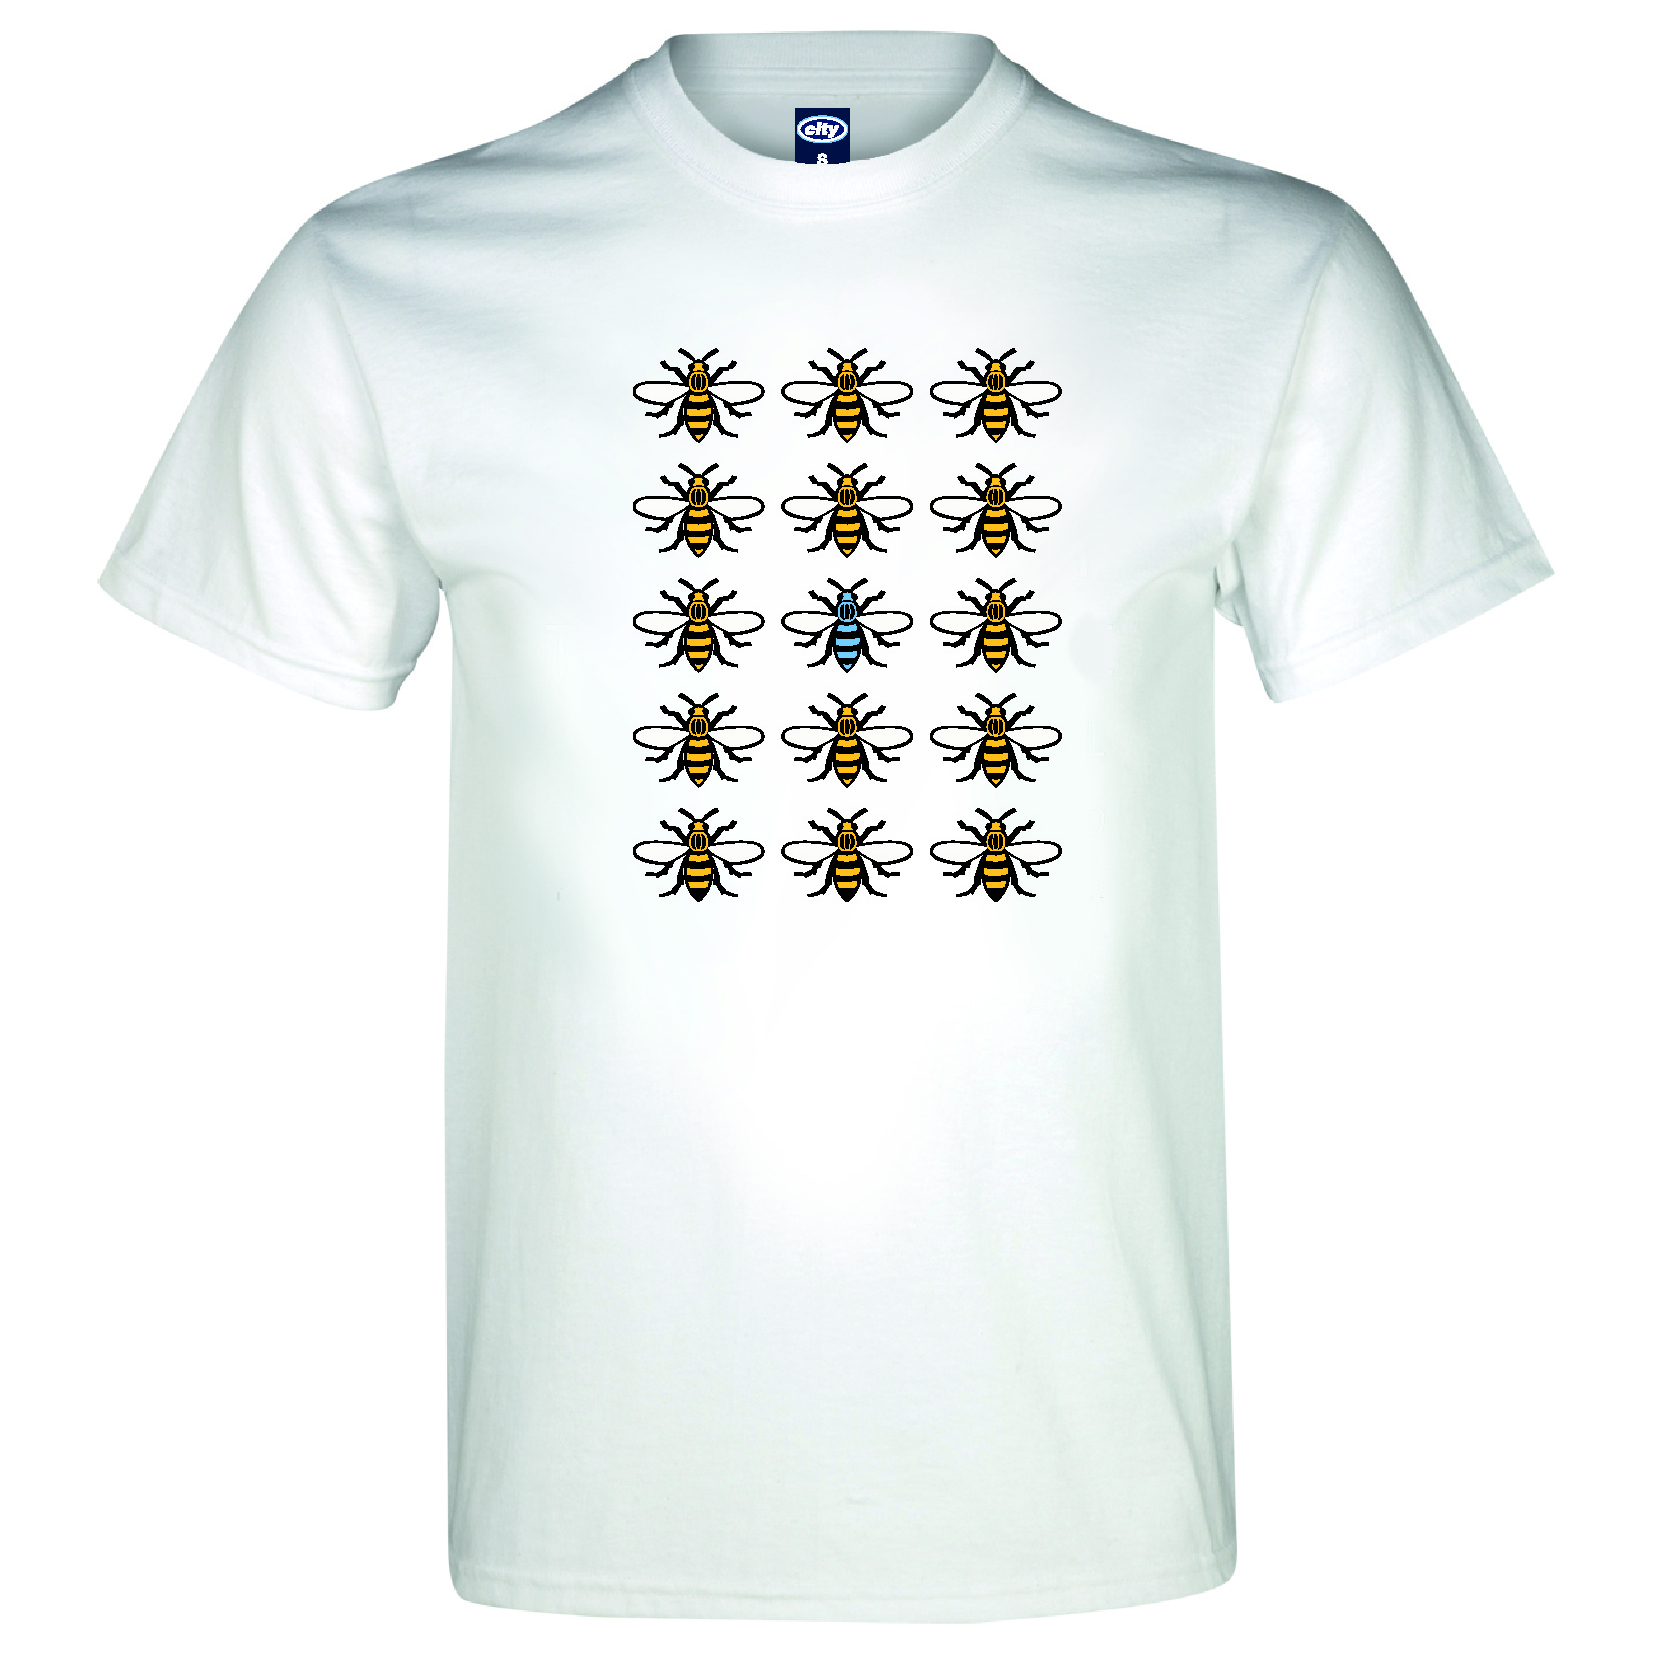 Manchester City 2for20 Bee T-Shirt - Mens - White